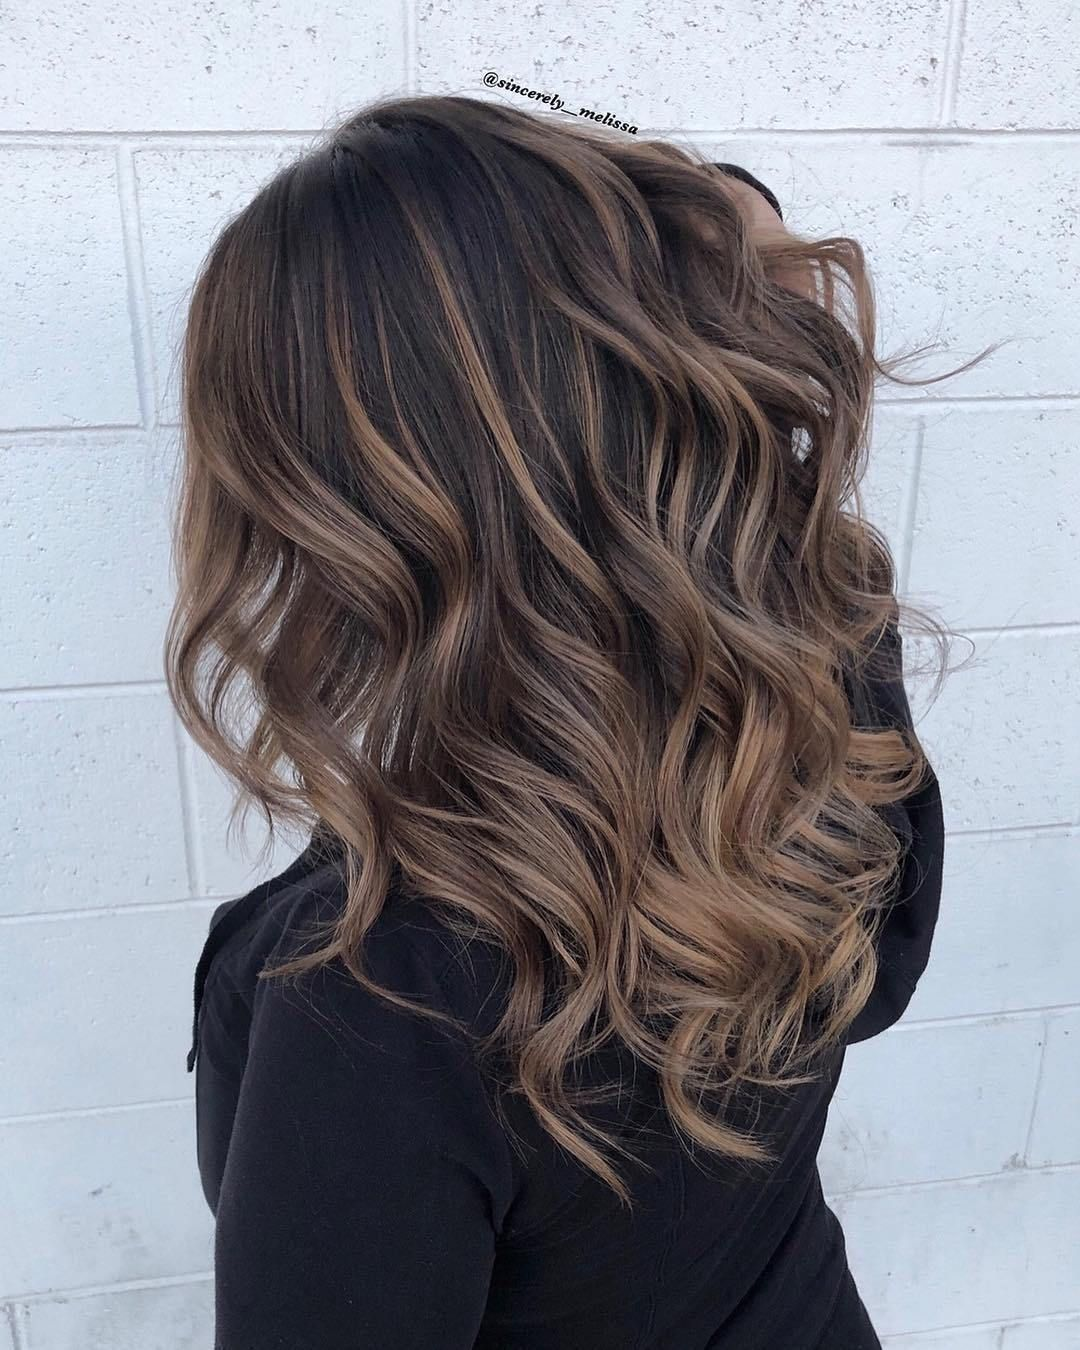 4 Hairstyles Featuring Dark Brown Hair With Highlights#brown